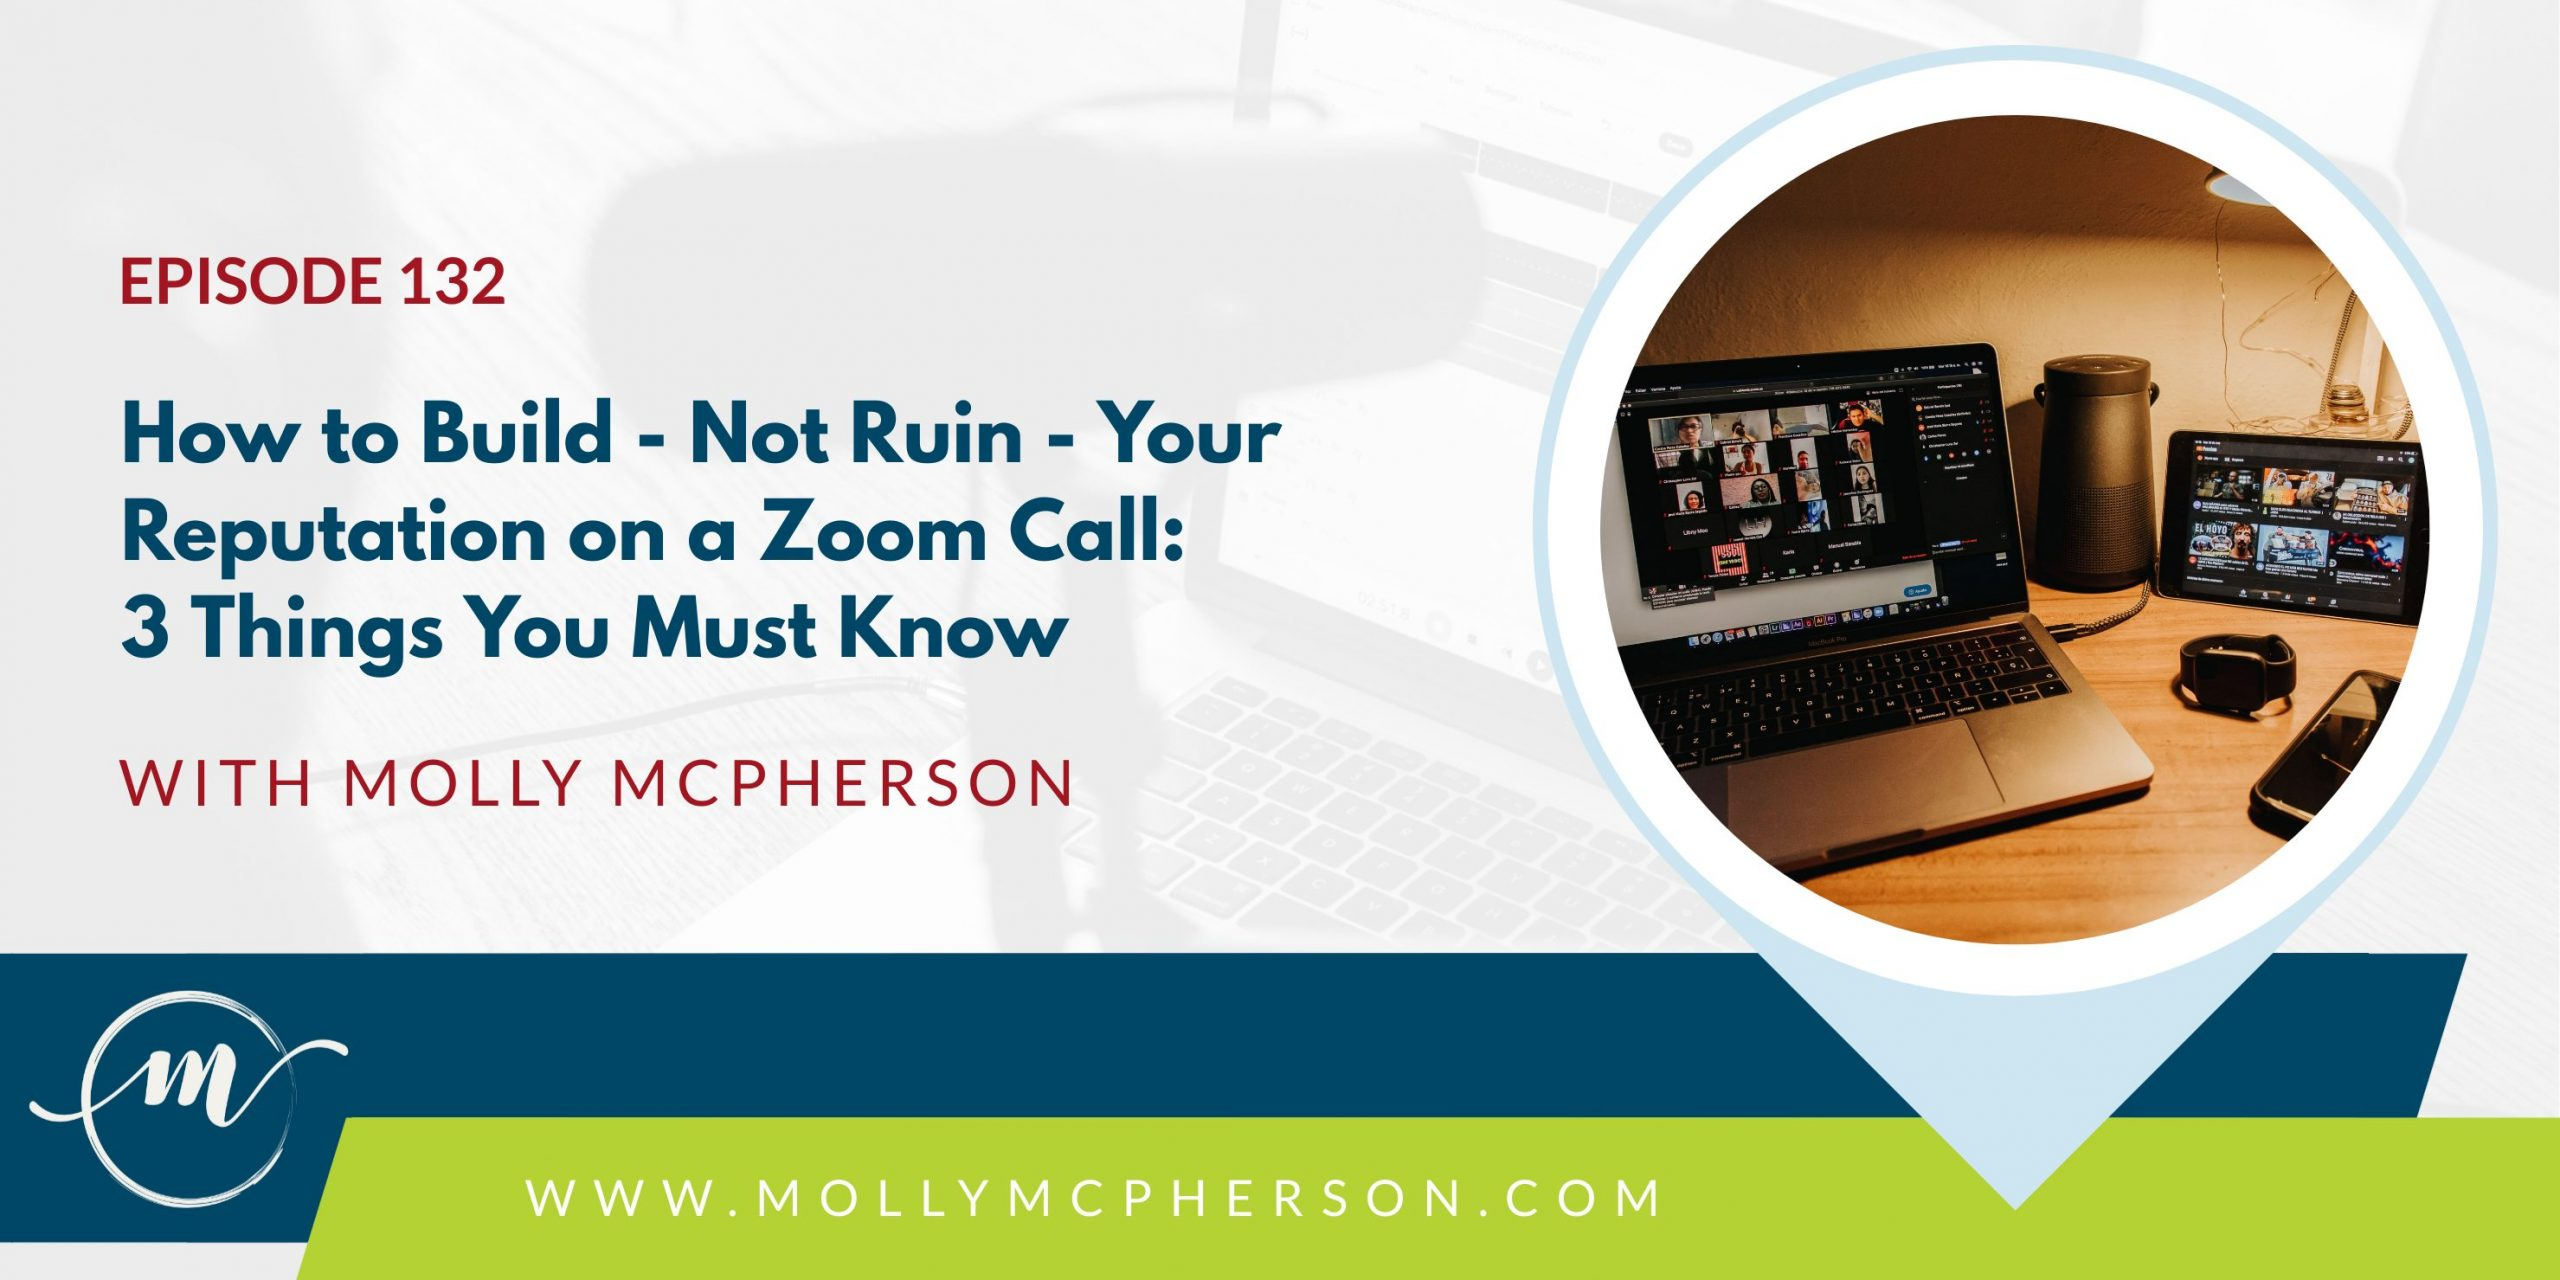 How to Build - Not Ruin - Your Reputation on a Zoom Call: 3 Things You Must Know